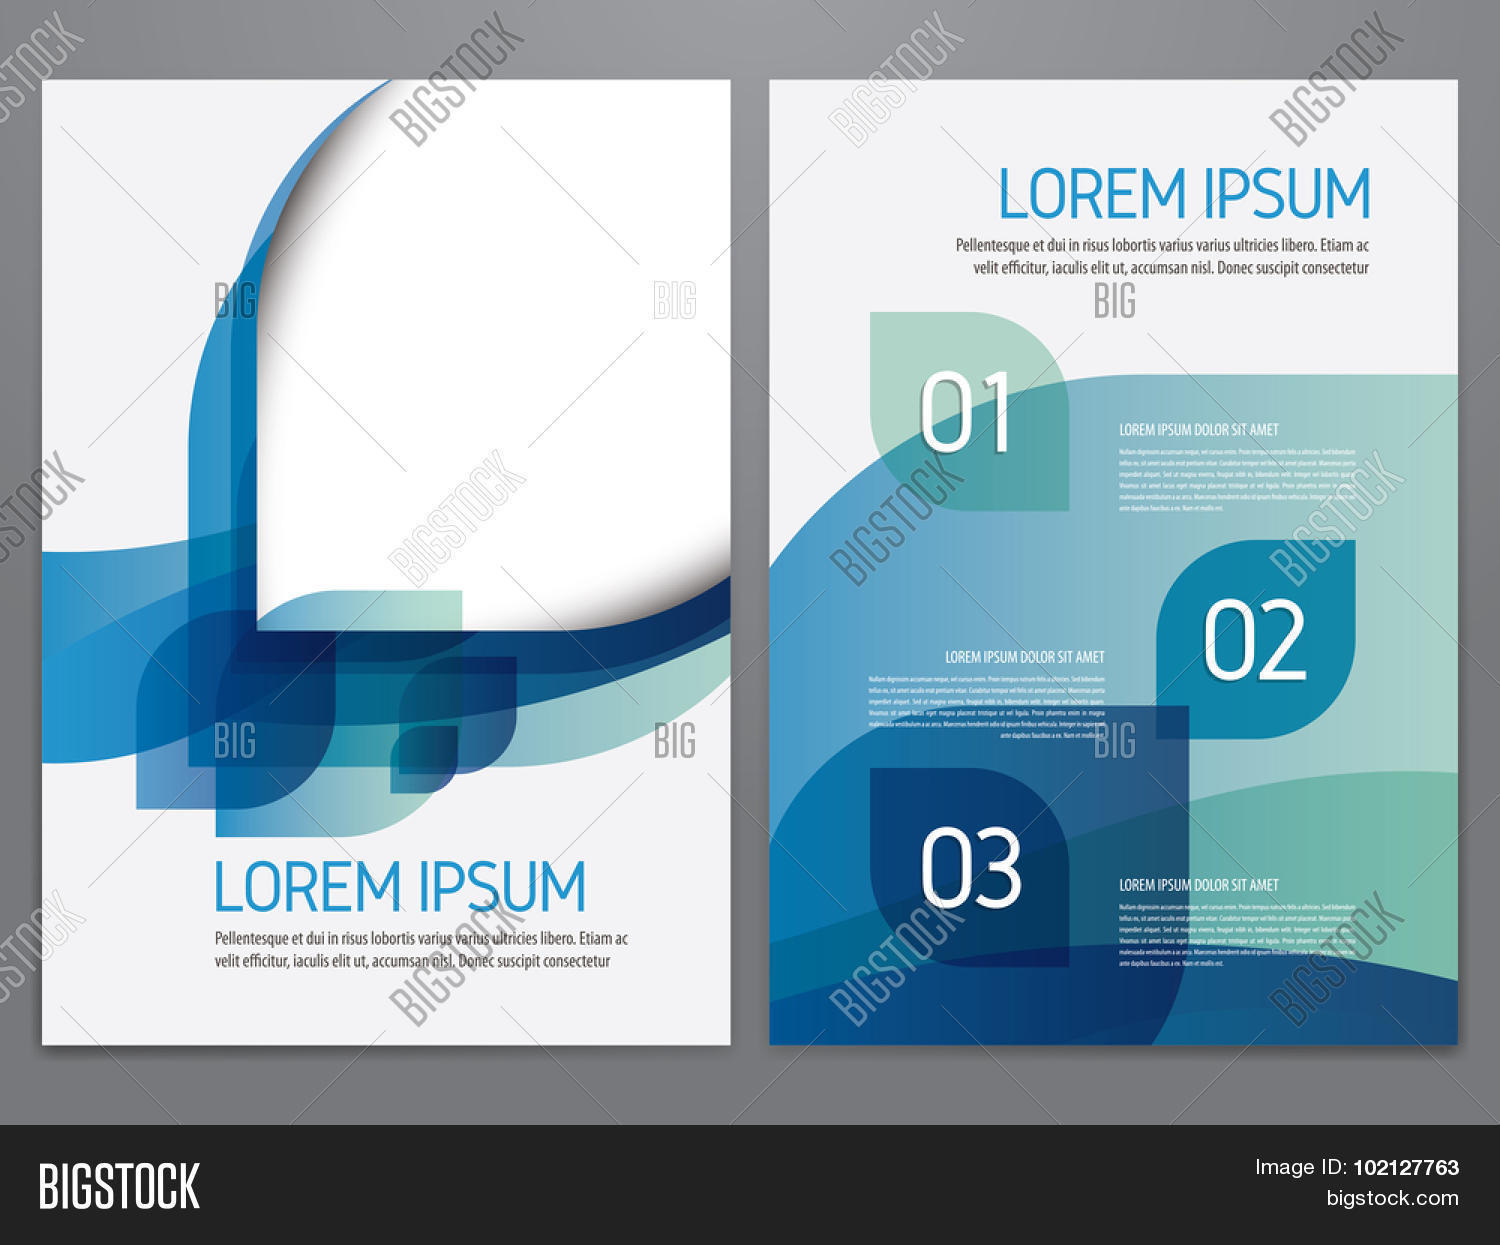 brochure annual report flyer magazine cover vector template brochure annual report flyer magazine cover vector template modern corporate design